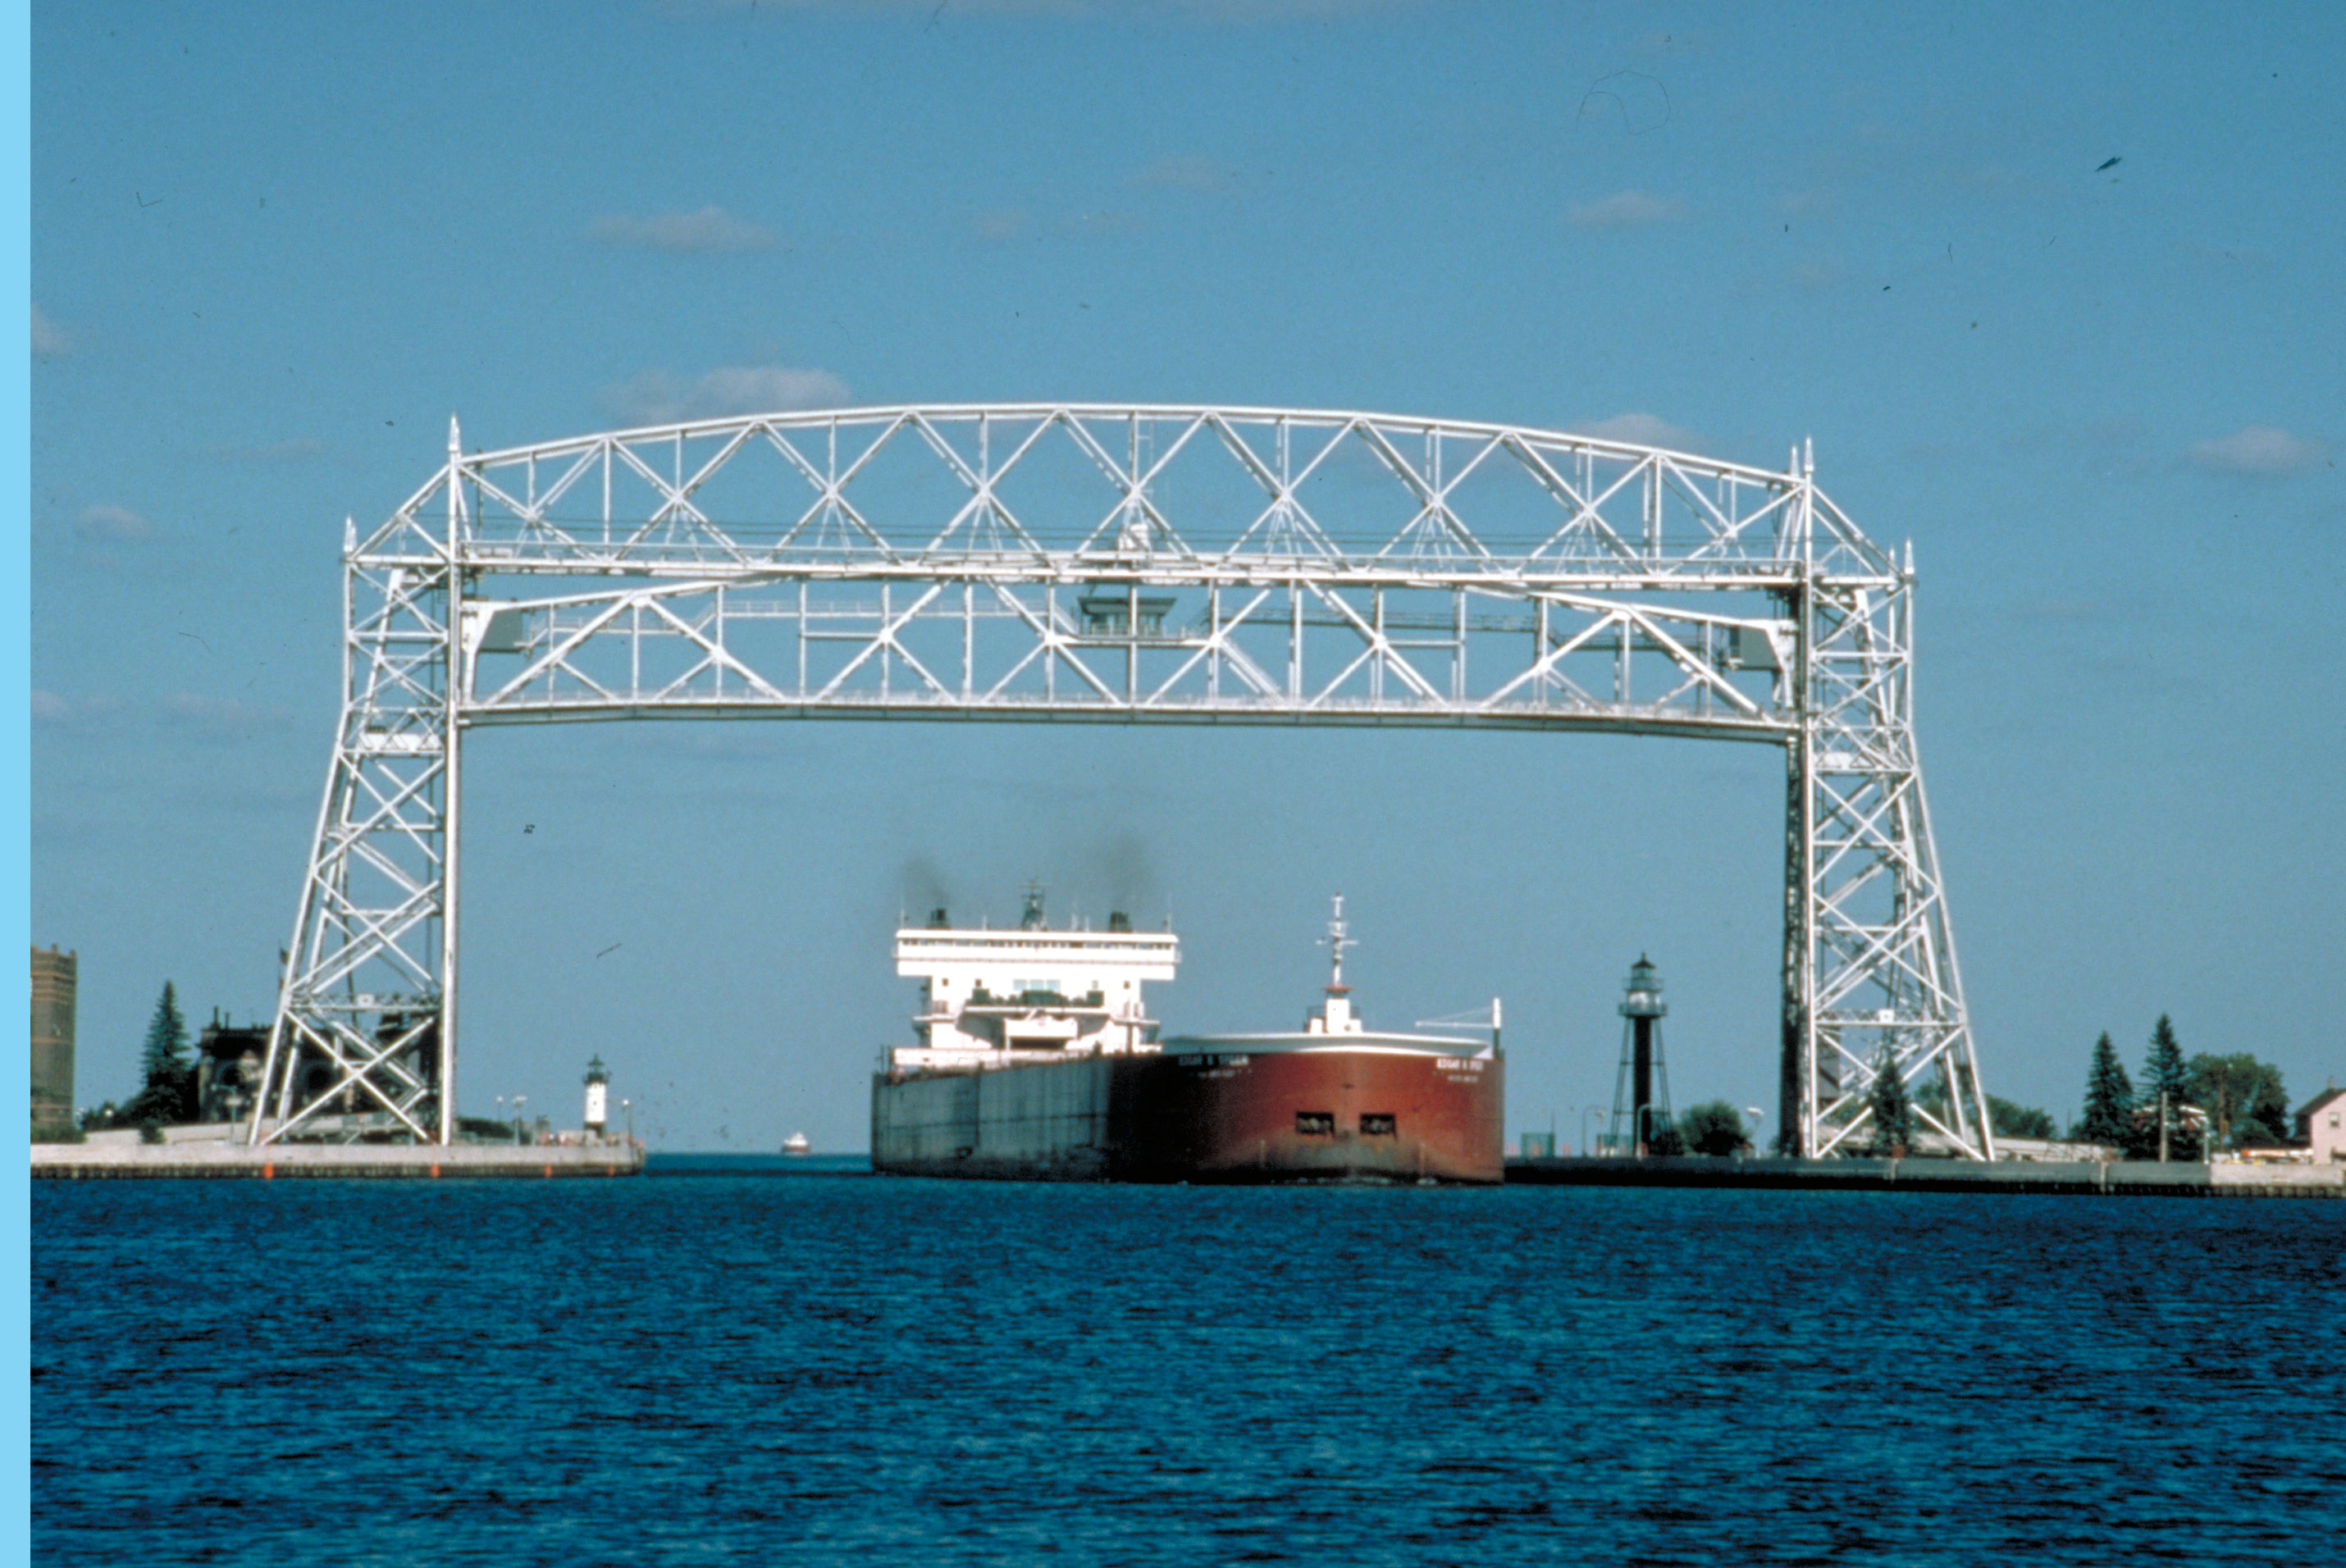 The aerial lift bridge rises to allow ships to pass under it